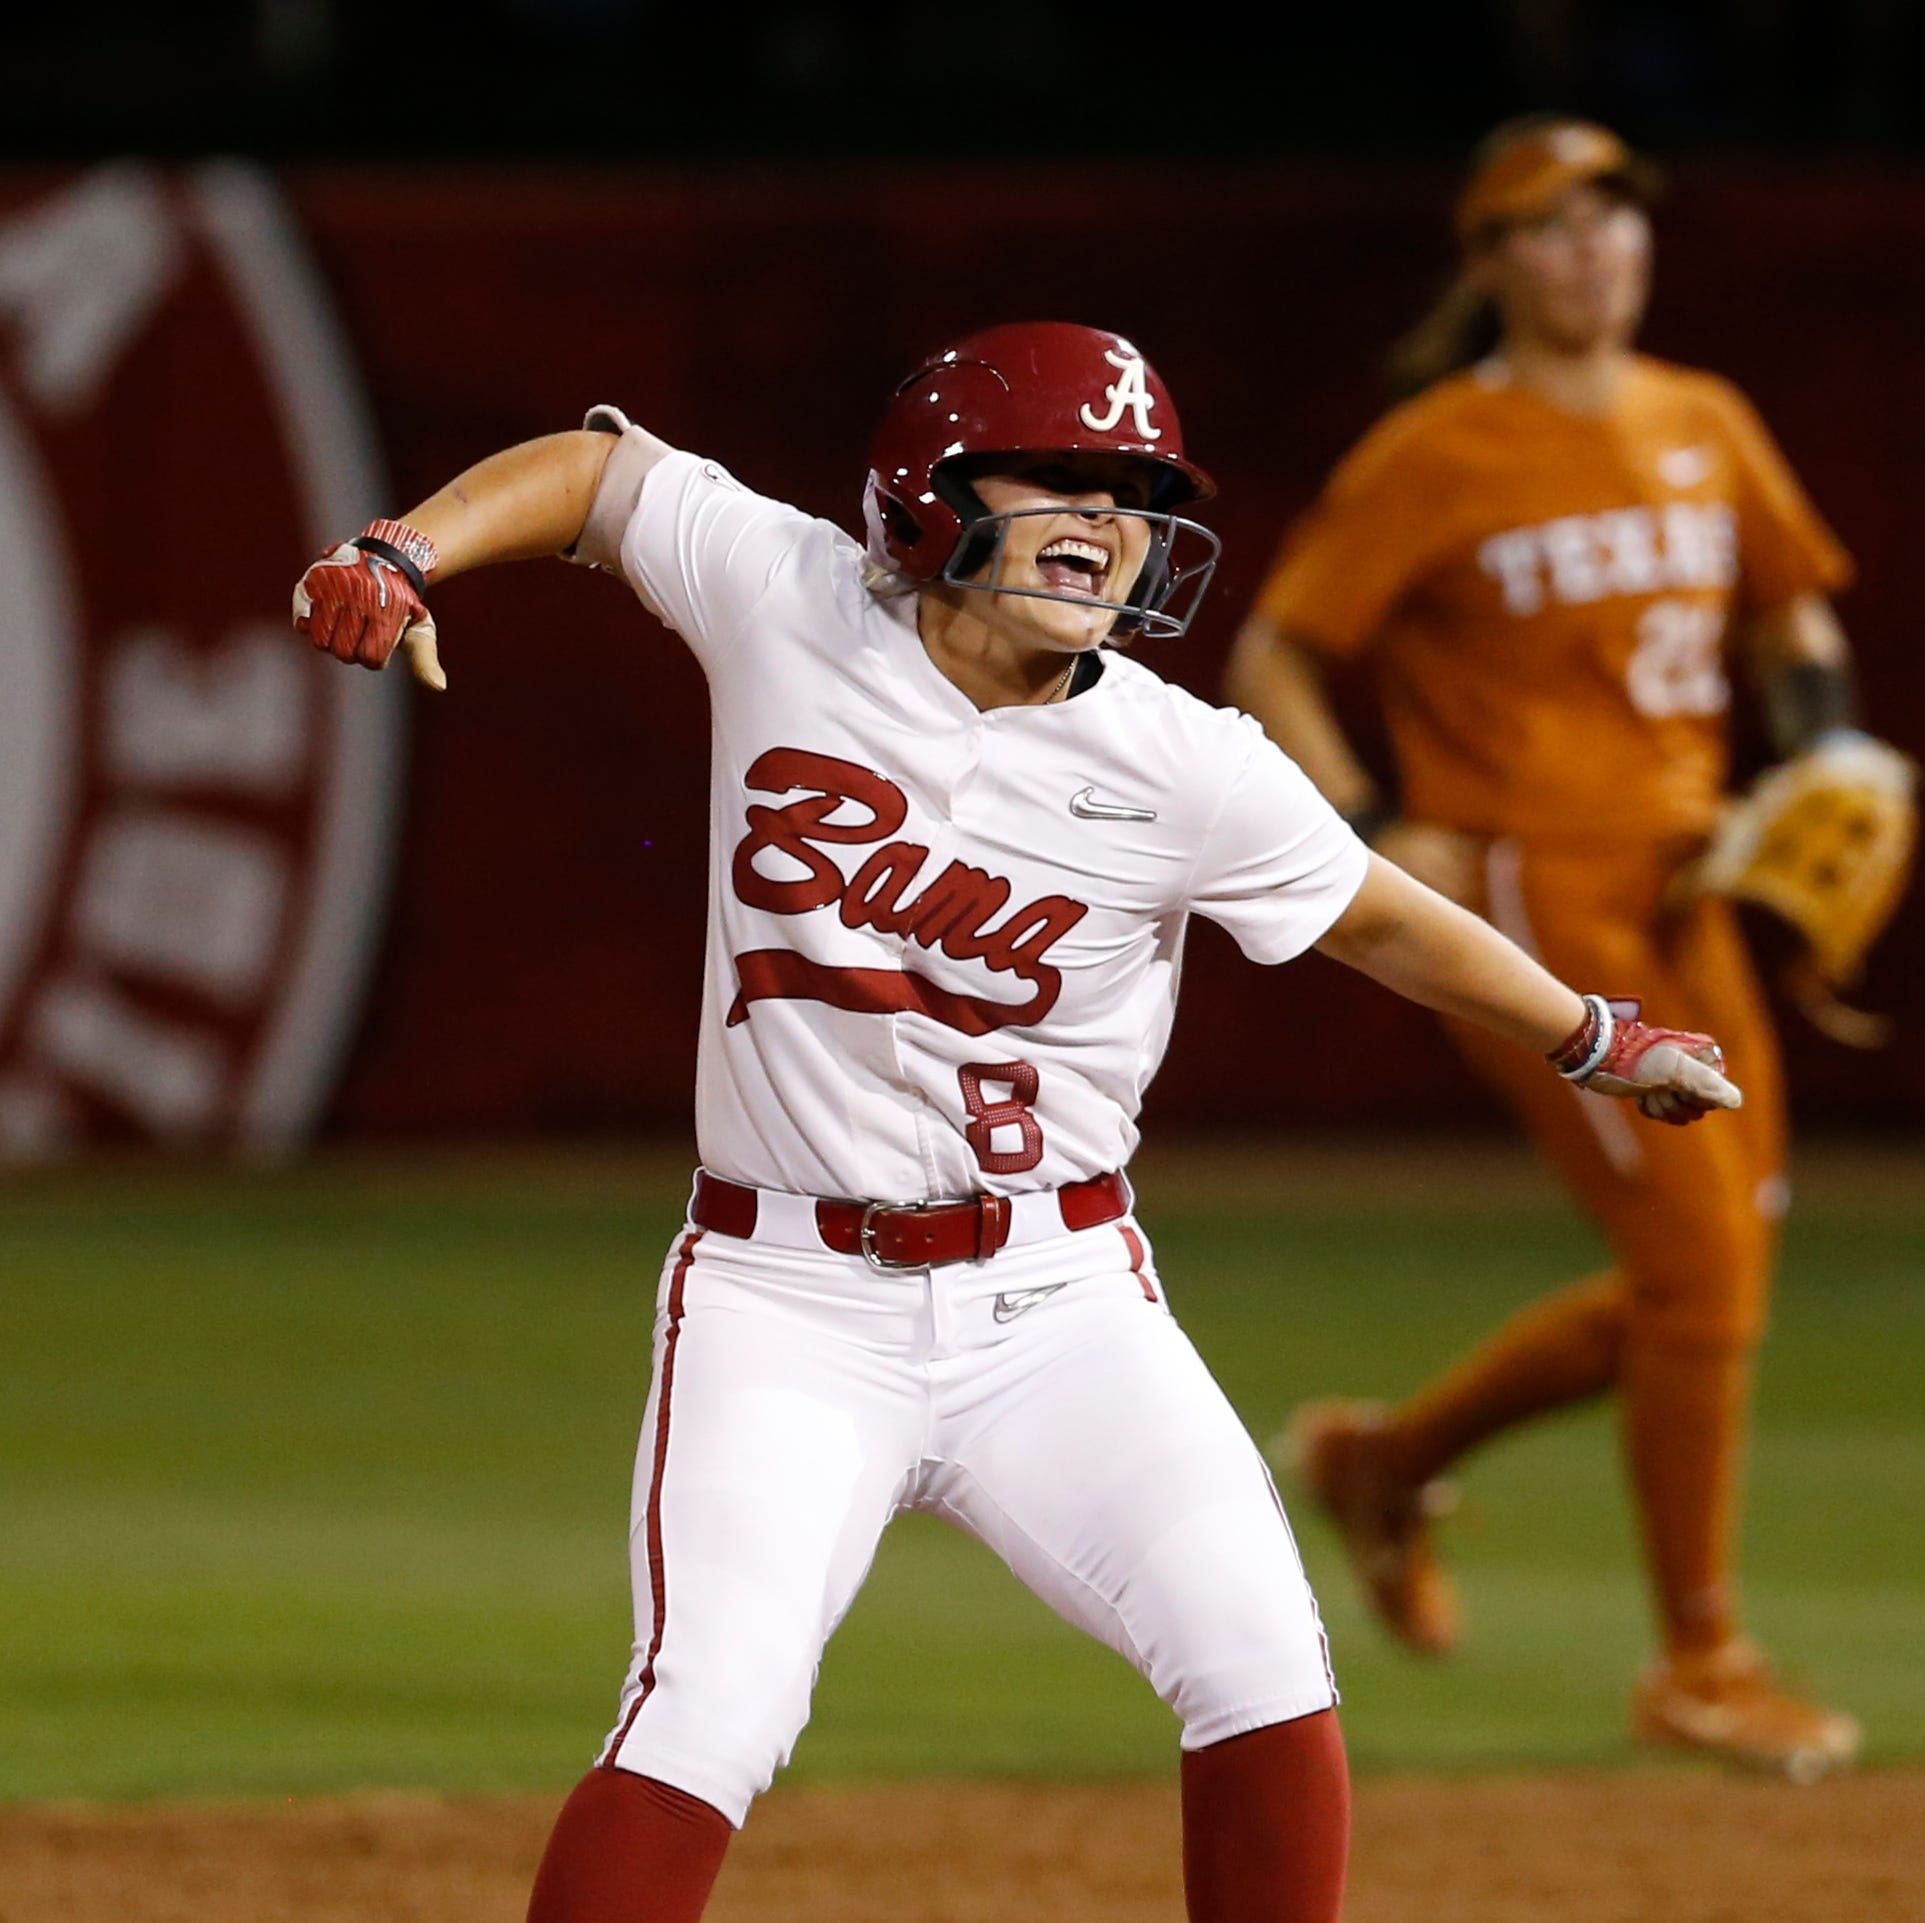 Alabama bats come alive in Game 3 to secure first WCWS bid since 2016